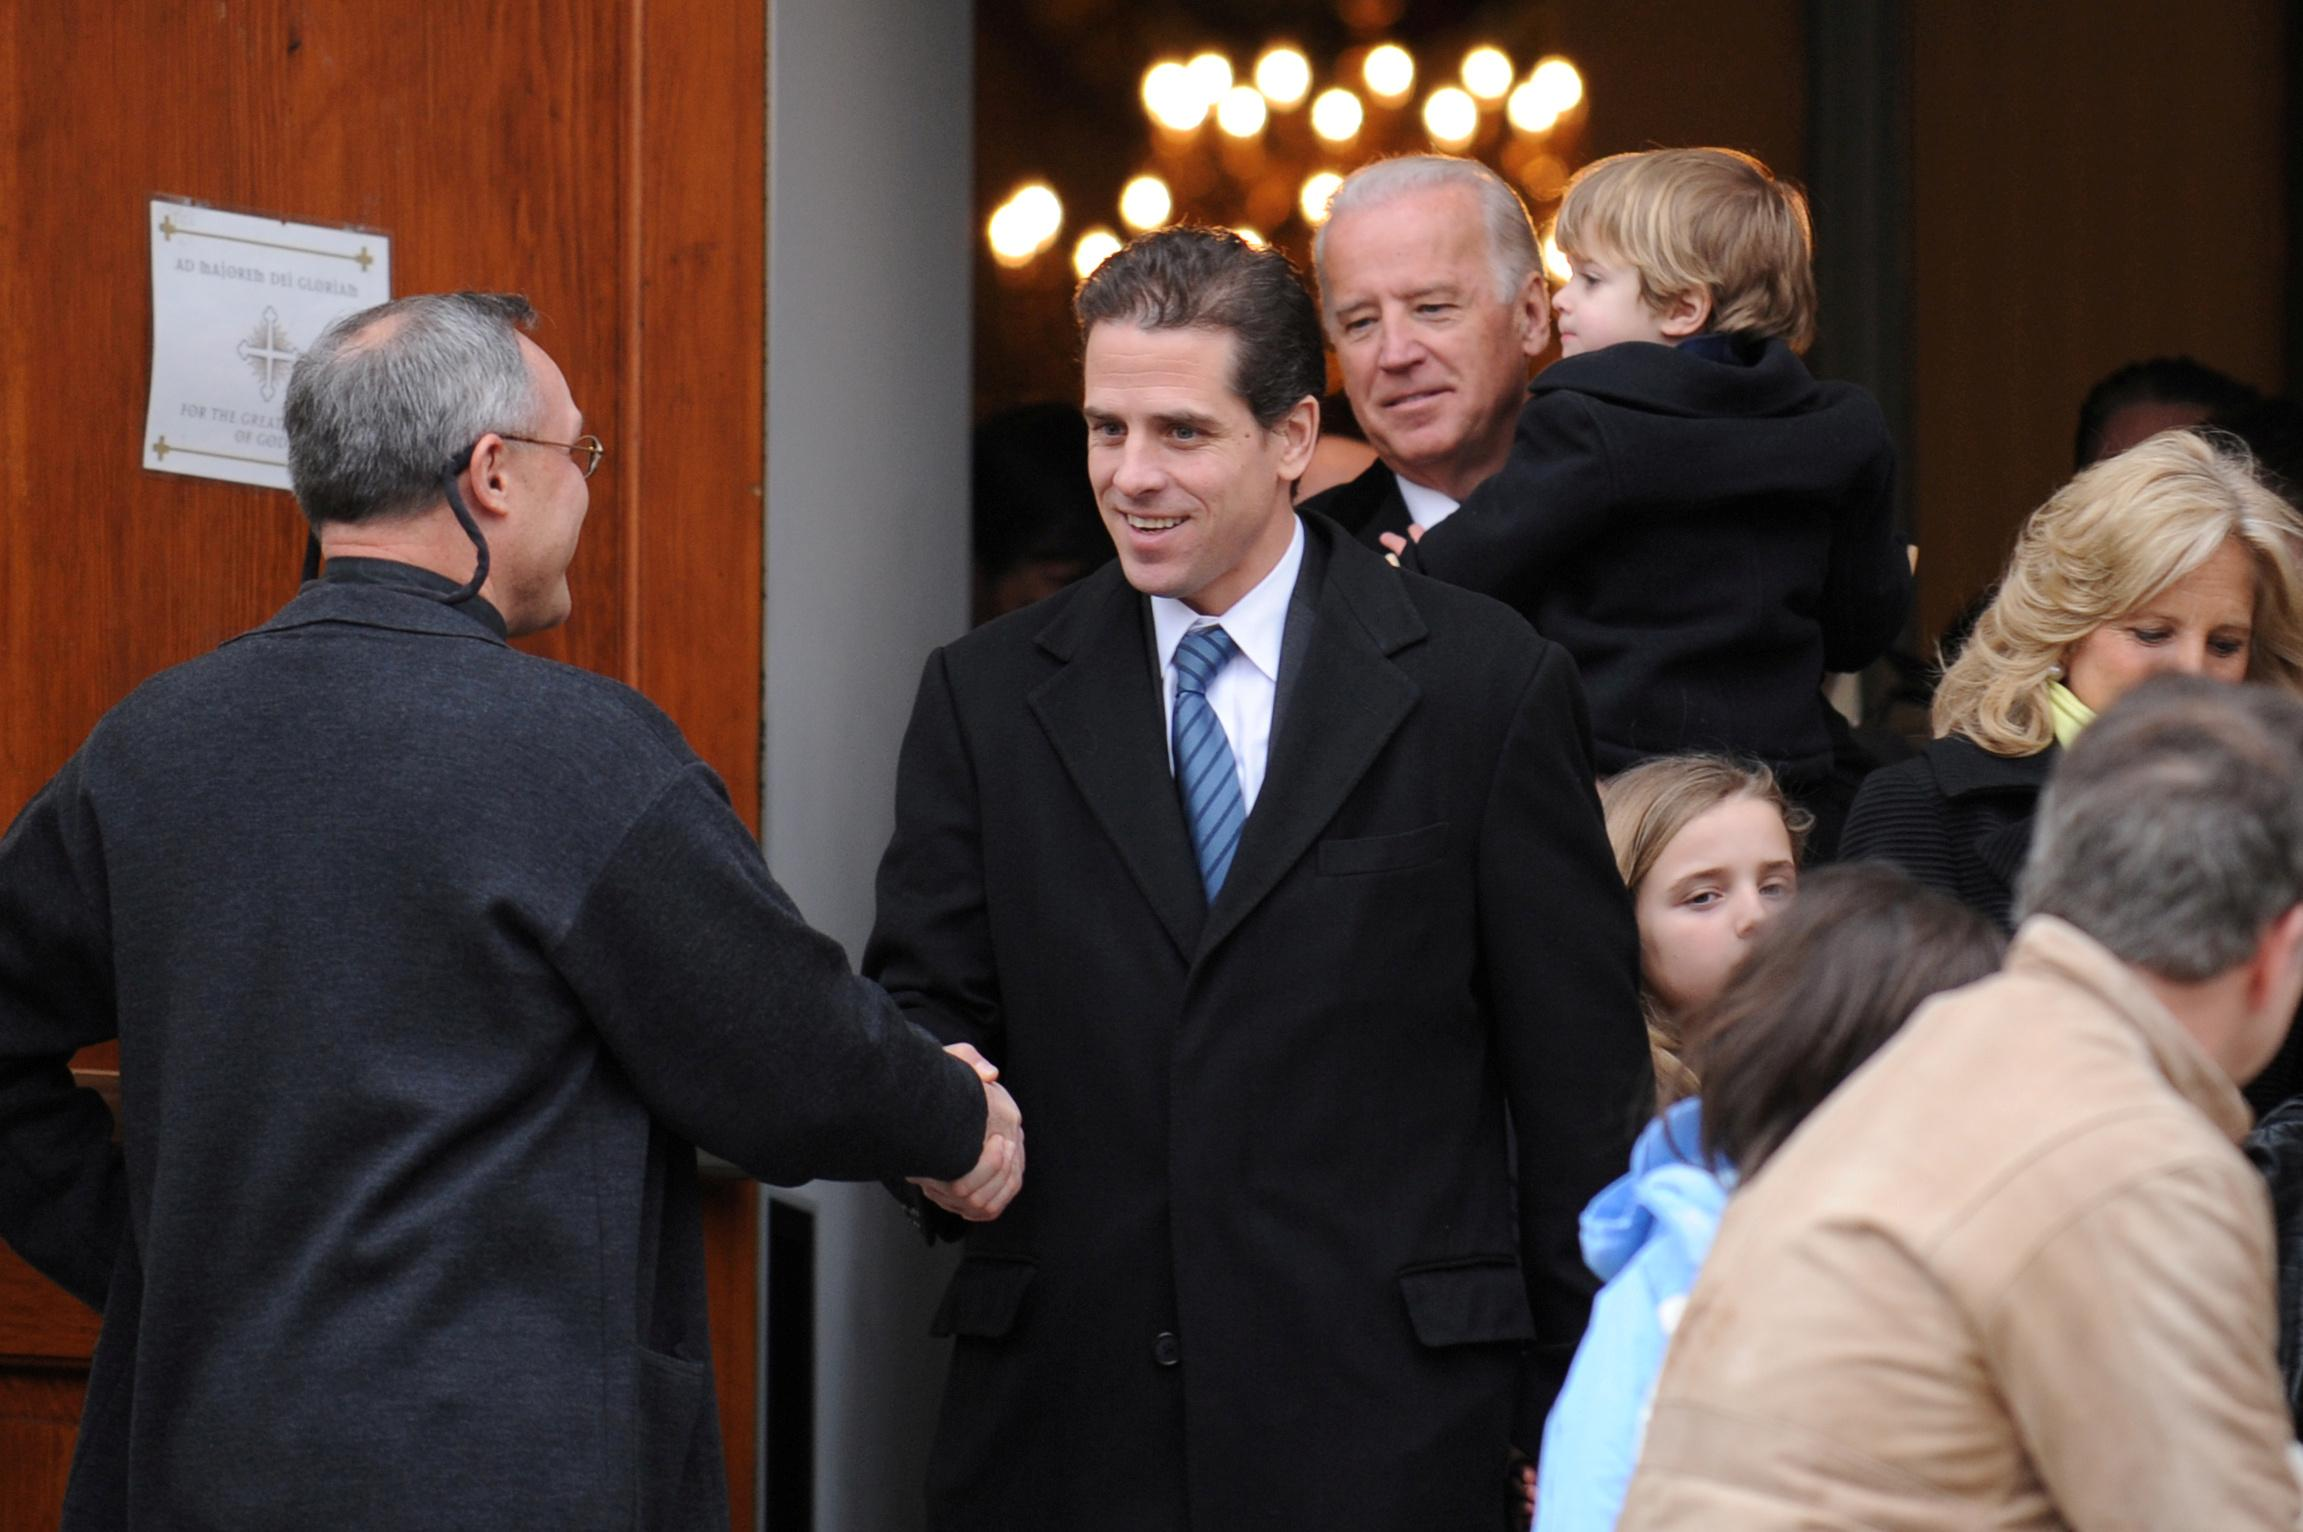 U.S. diplomat told Congress he raised red flag about Biden and...